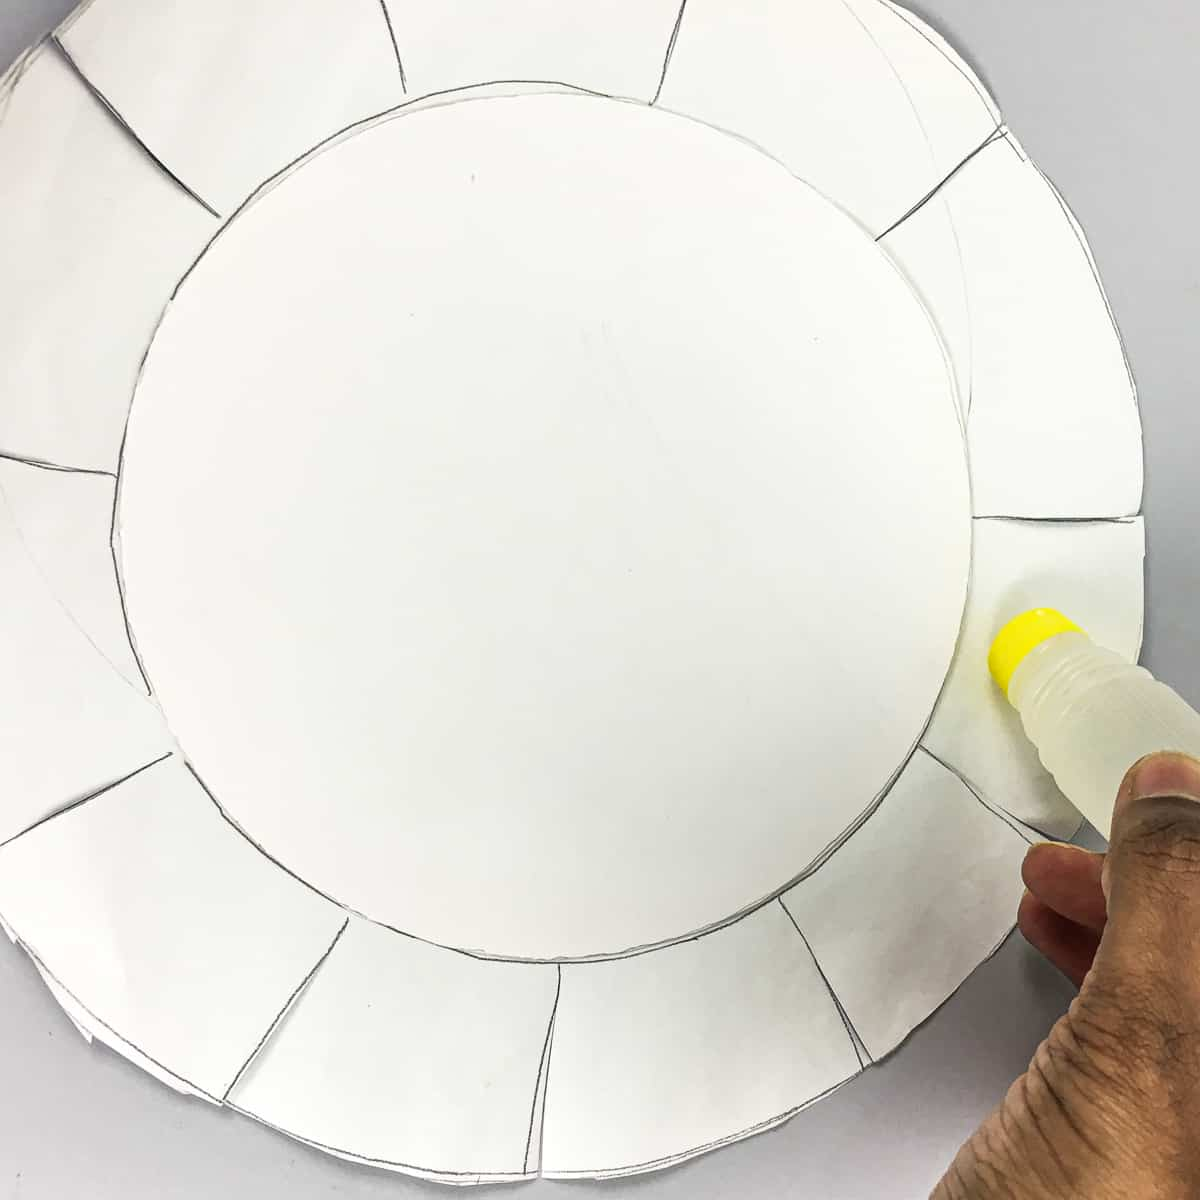 Applying glue to the a piece of round paper